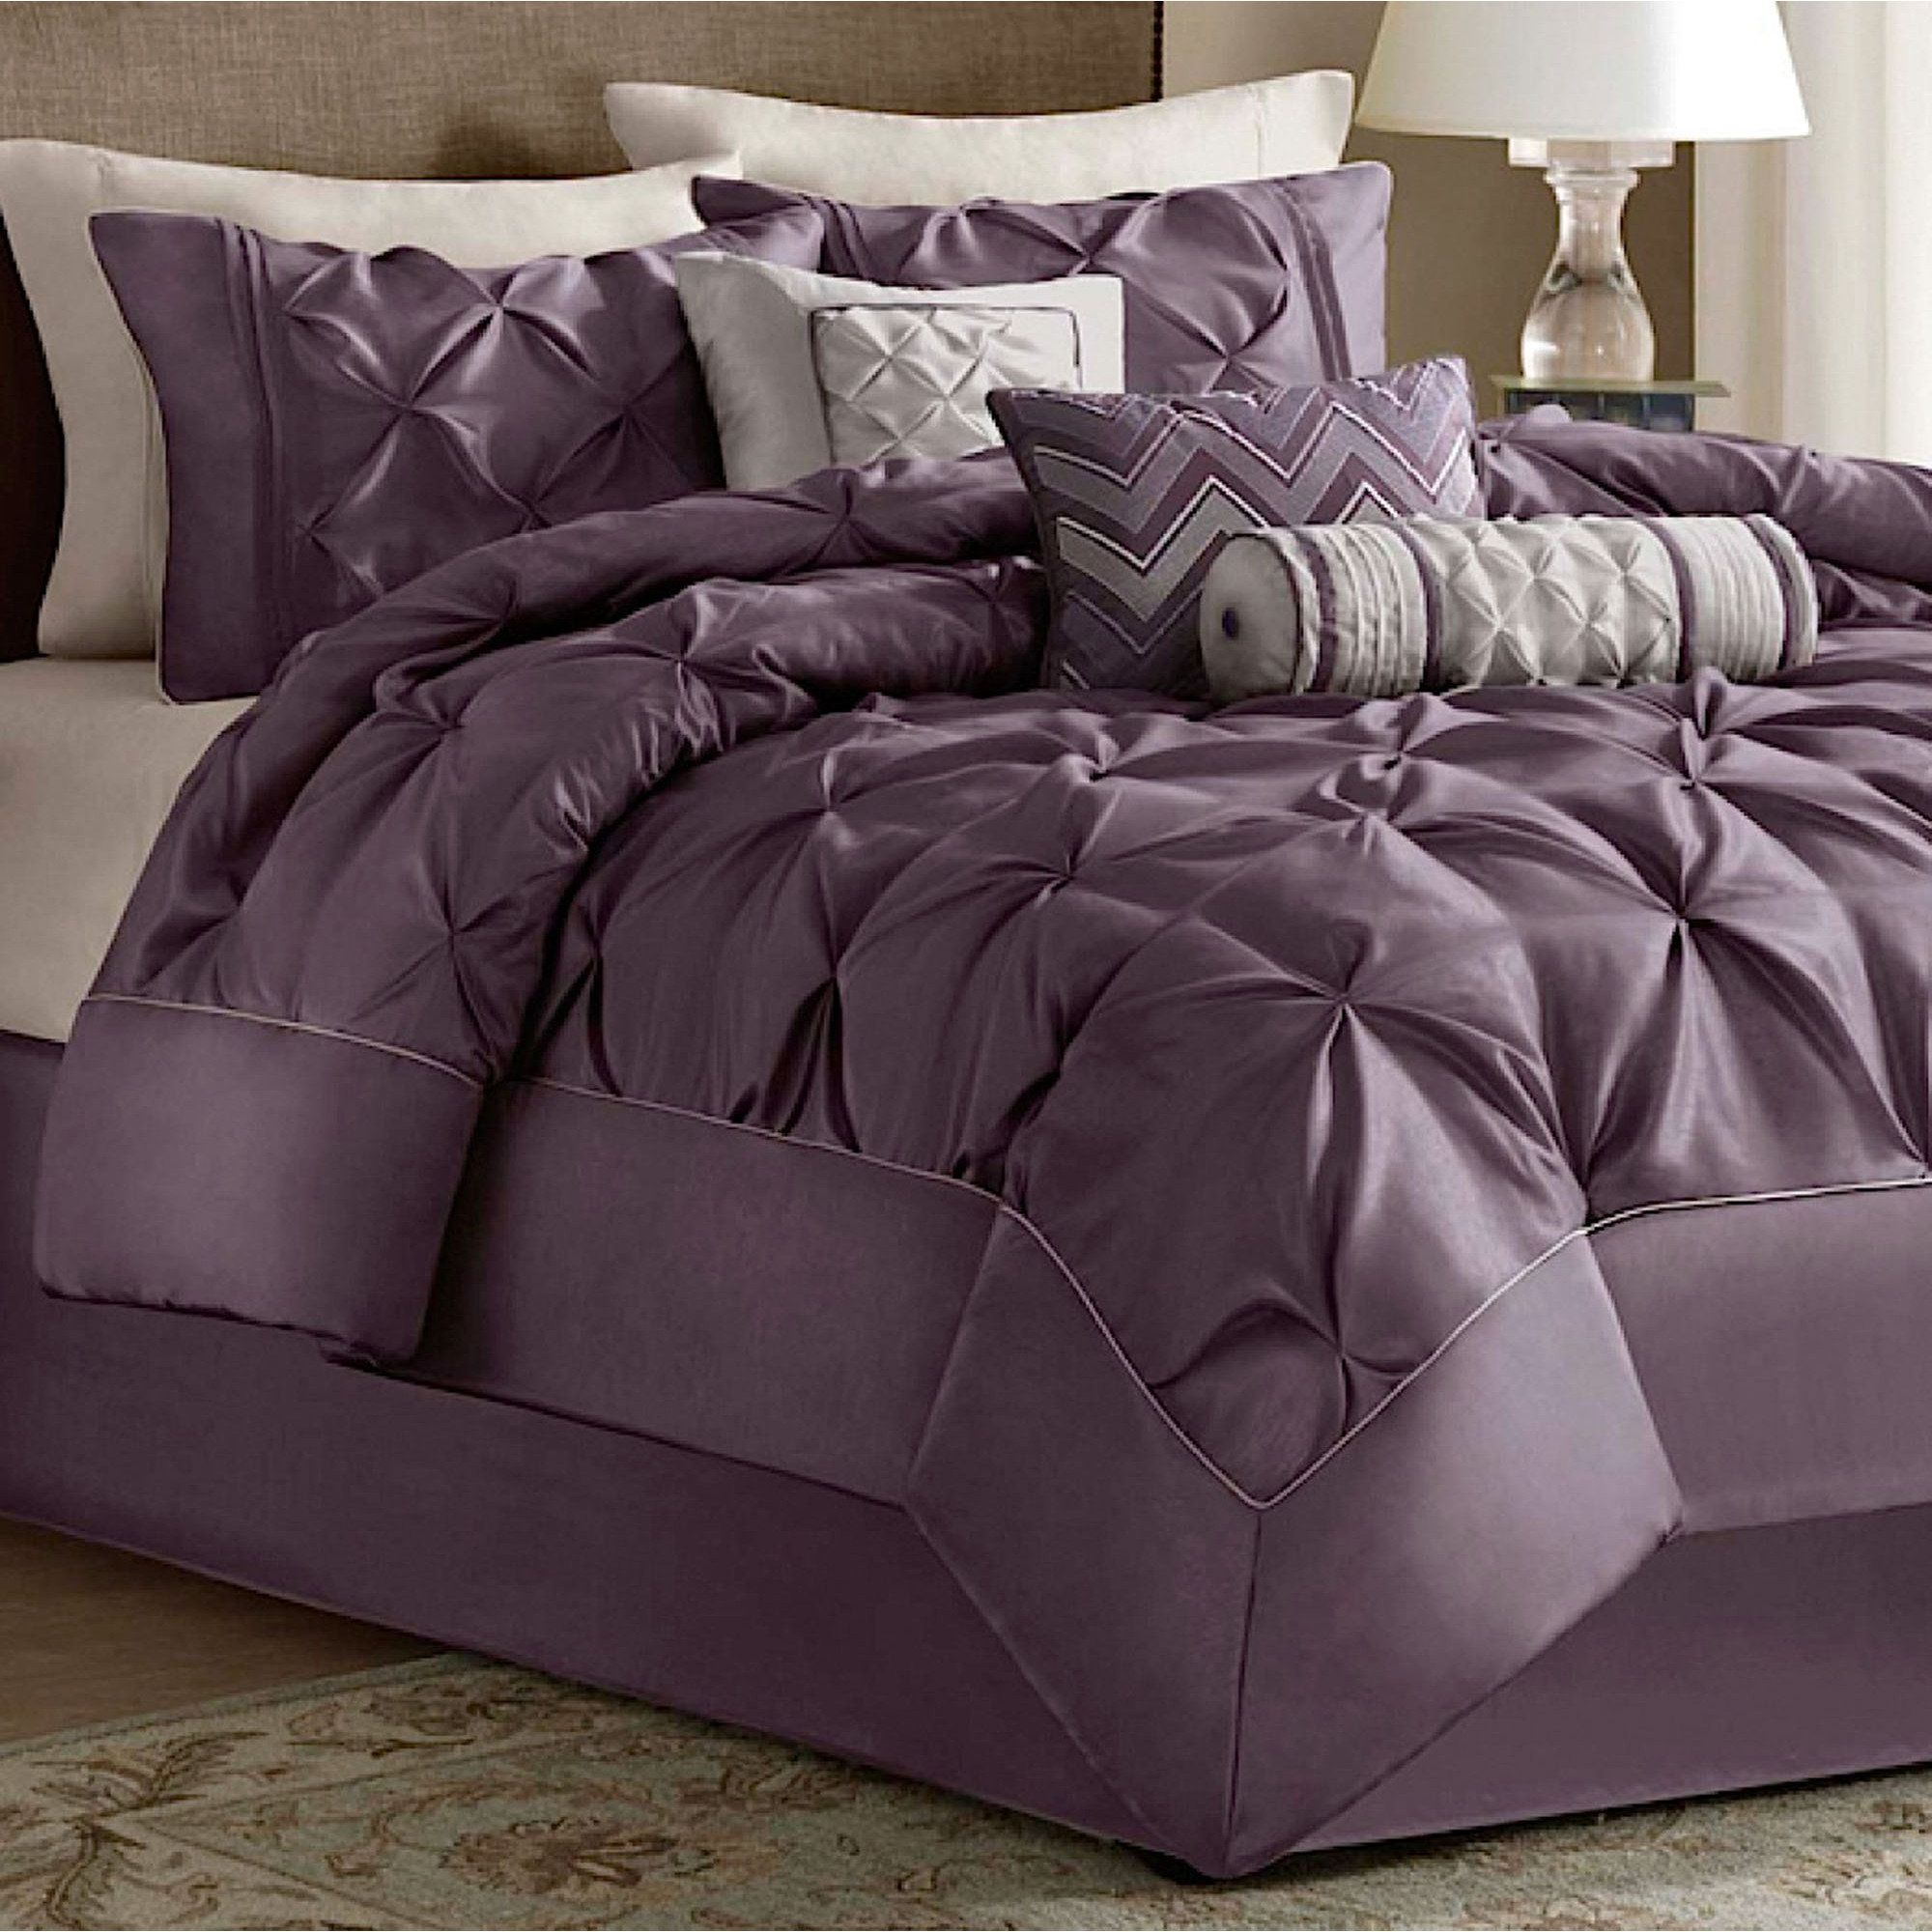 co quilt bed sheets aetherair main plum asli